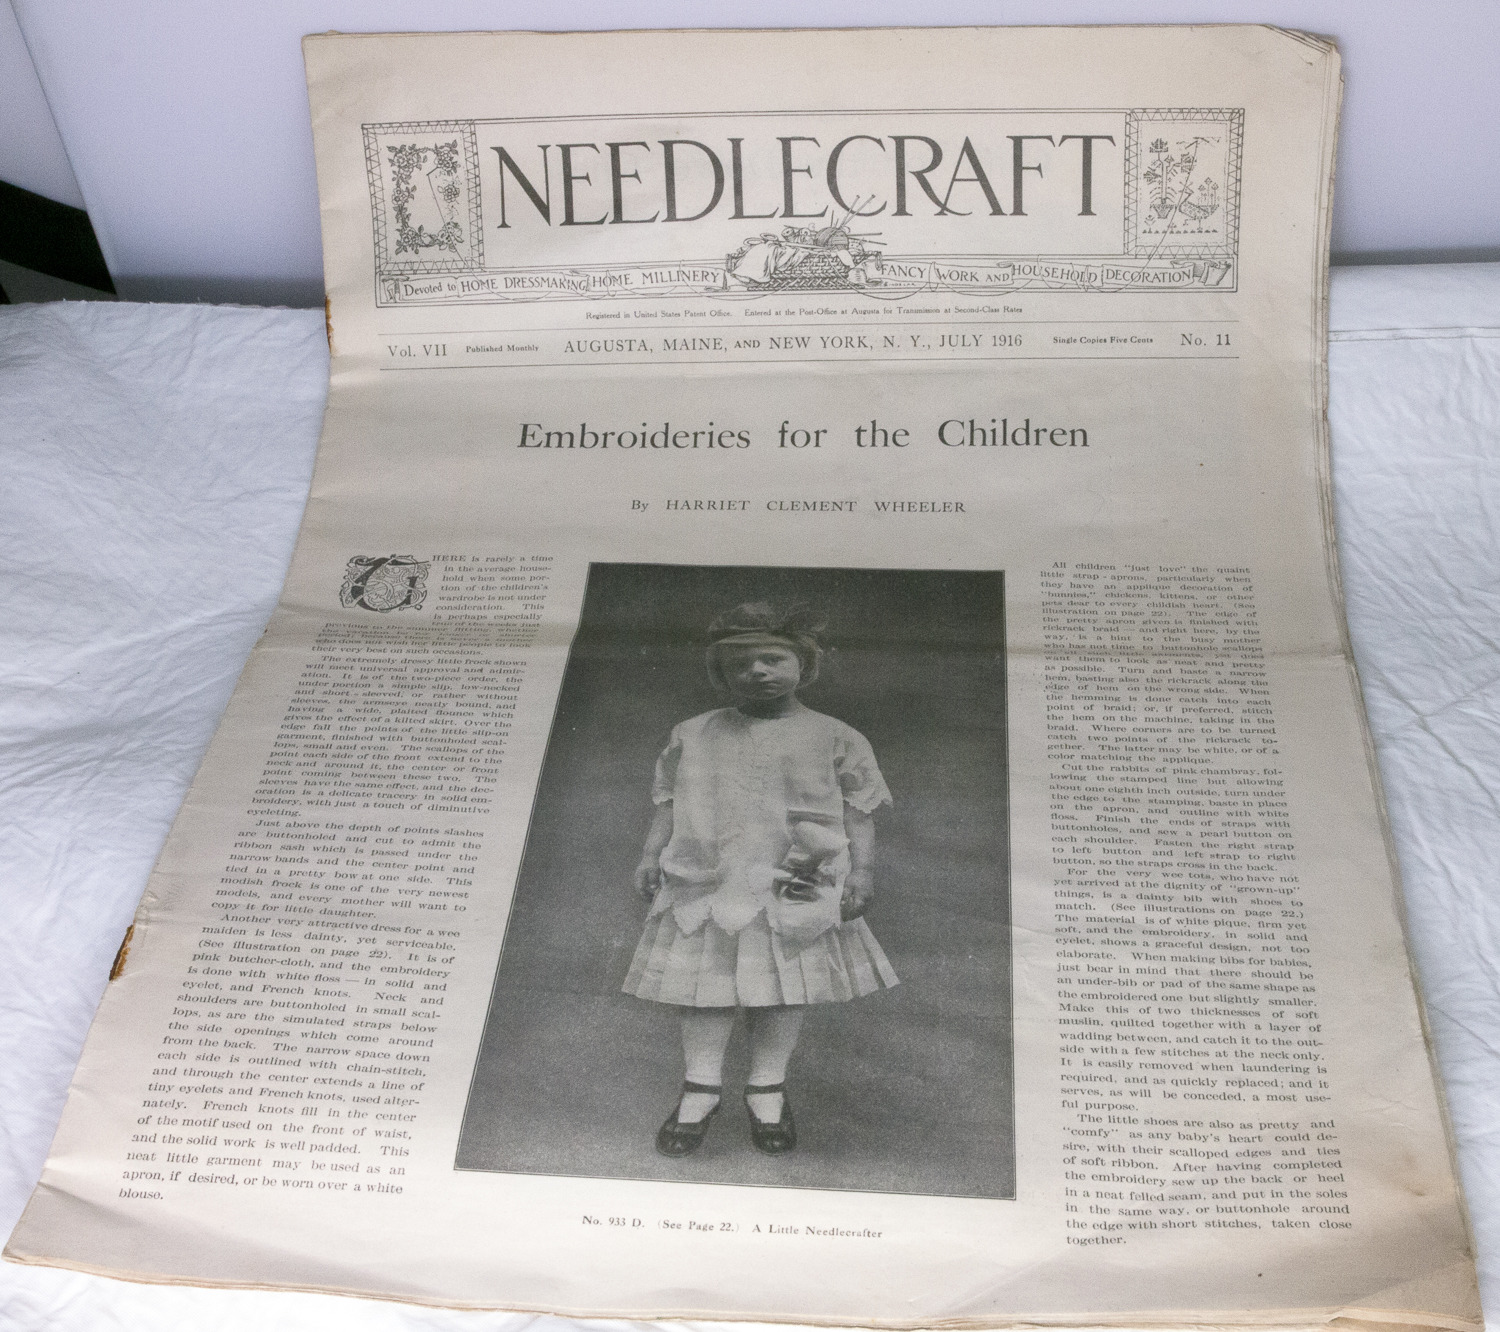 1916 Issue Of Needlecraft Magazine